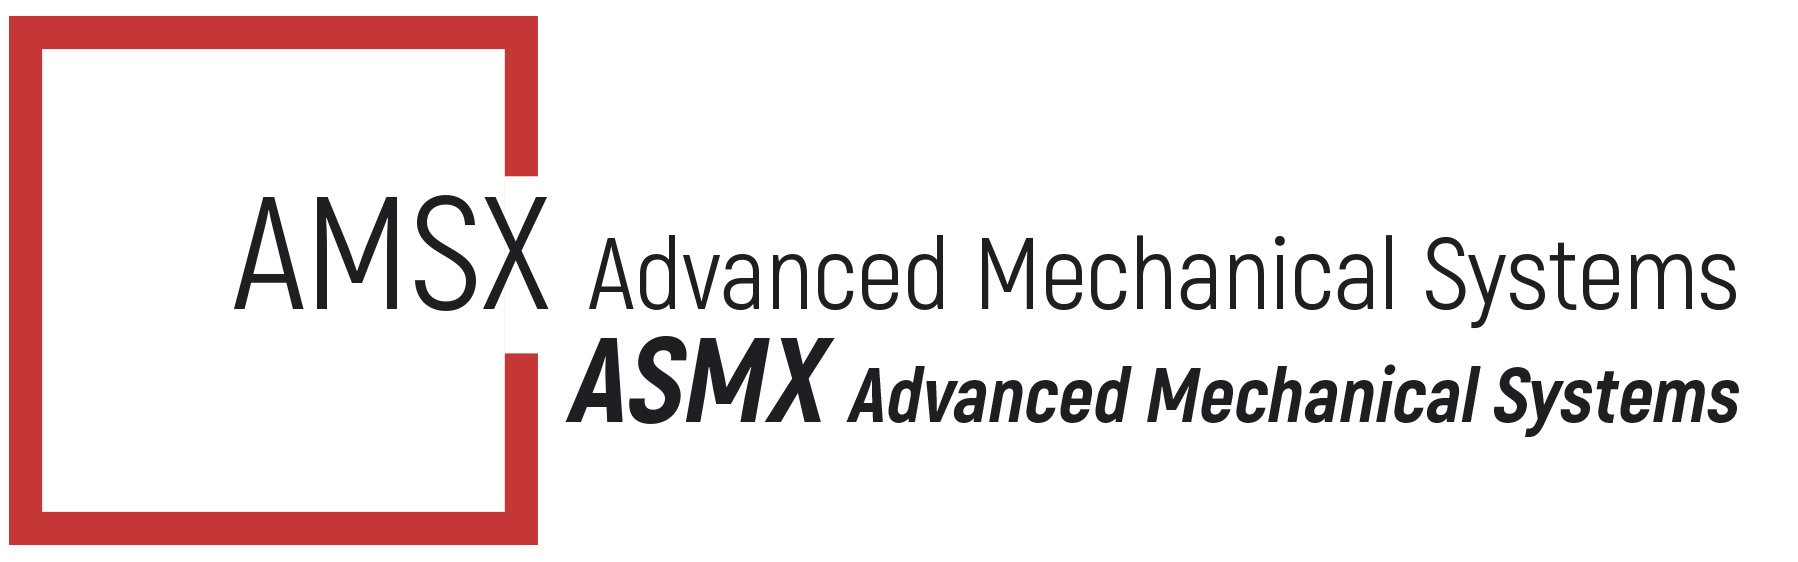 ASMX Advanced Mechanical Systems